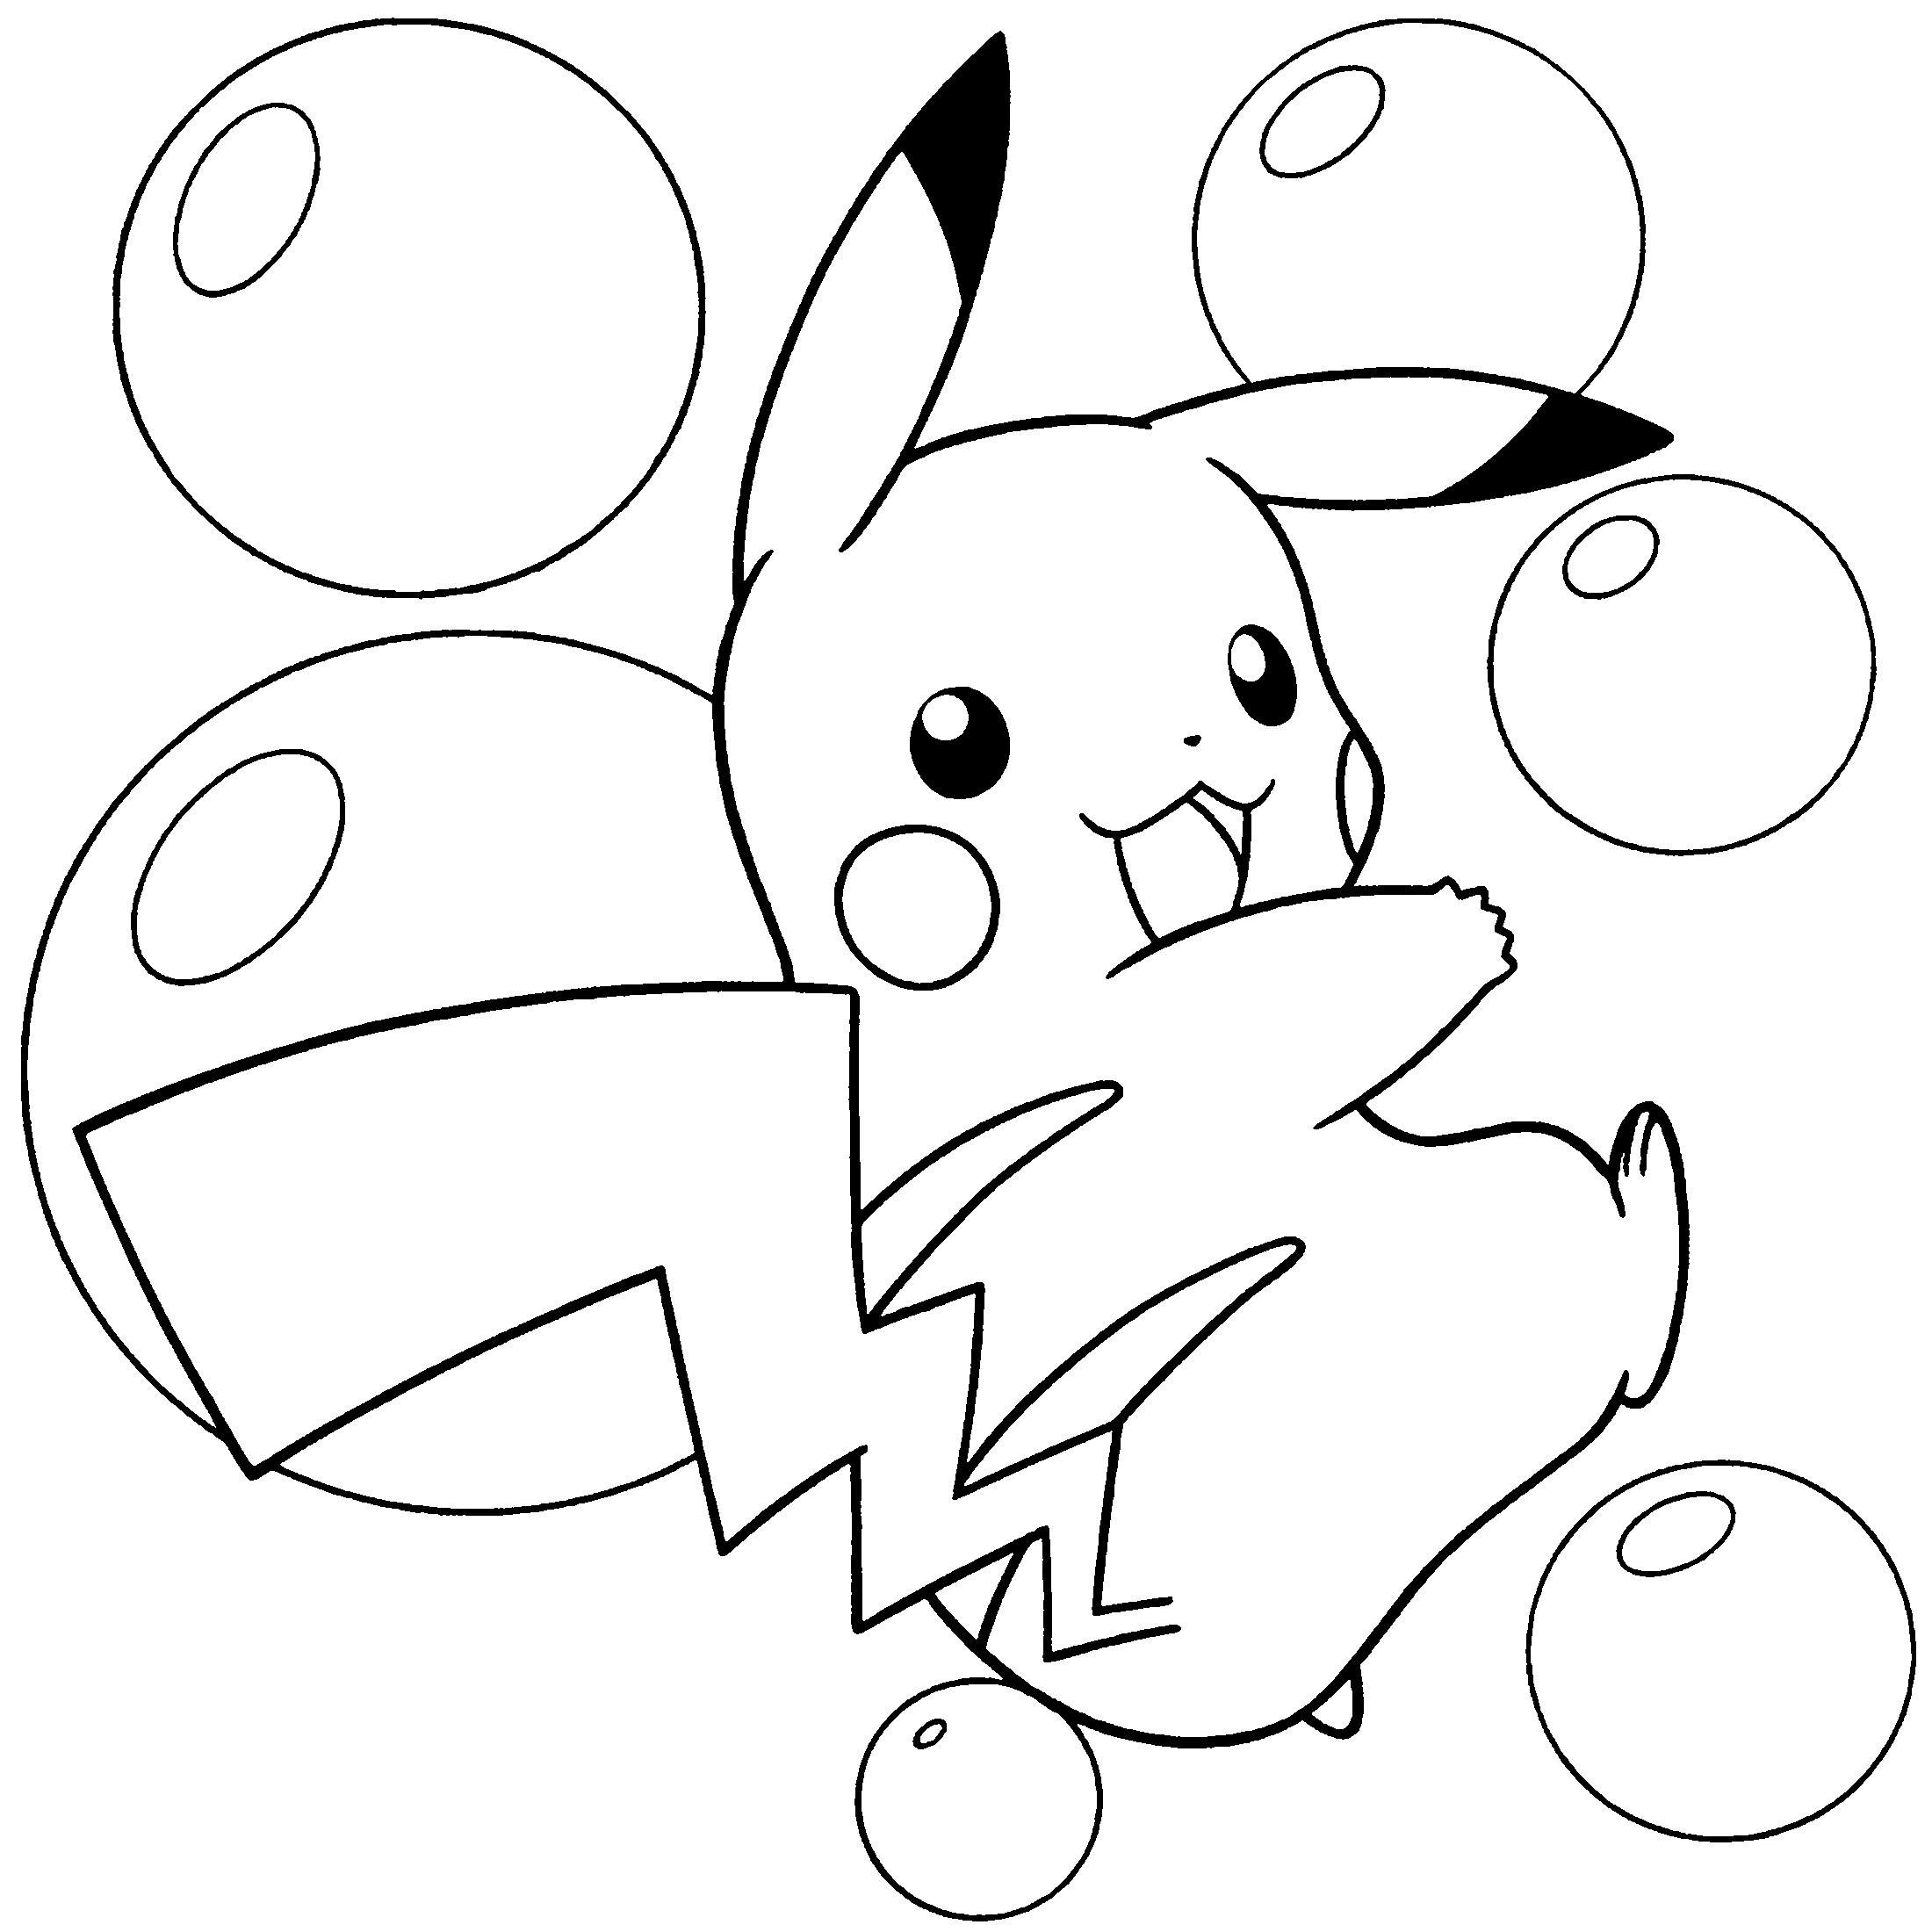 Coloring pages for pokemon -  Pokemon Diamond Pearl Coloring Pages